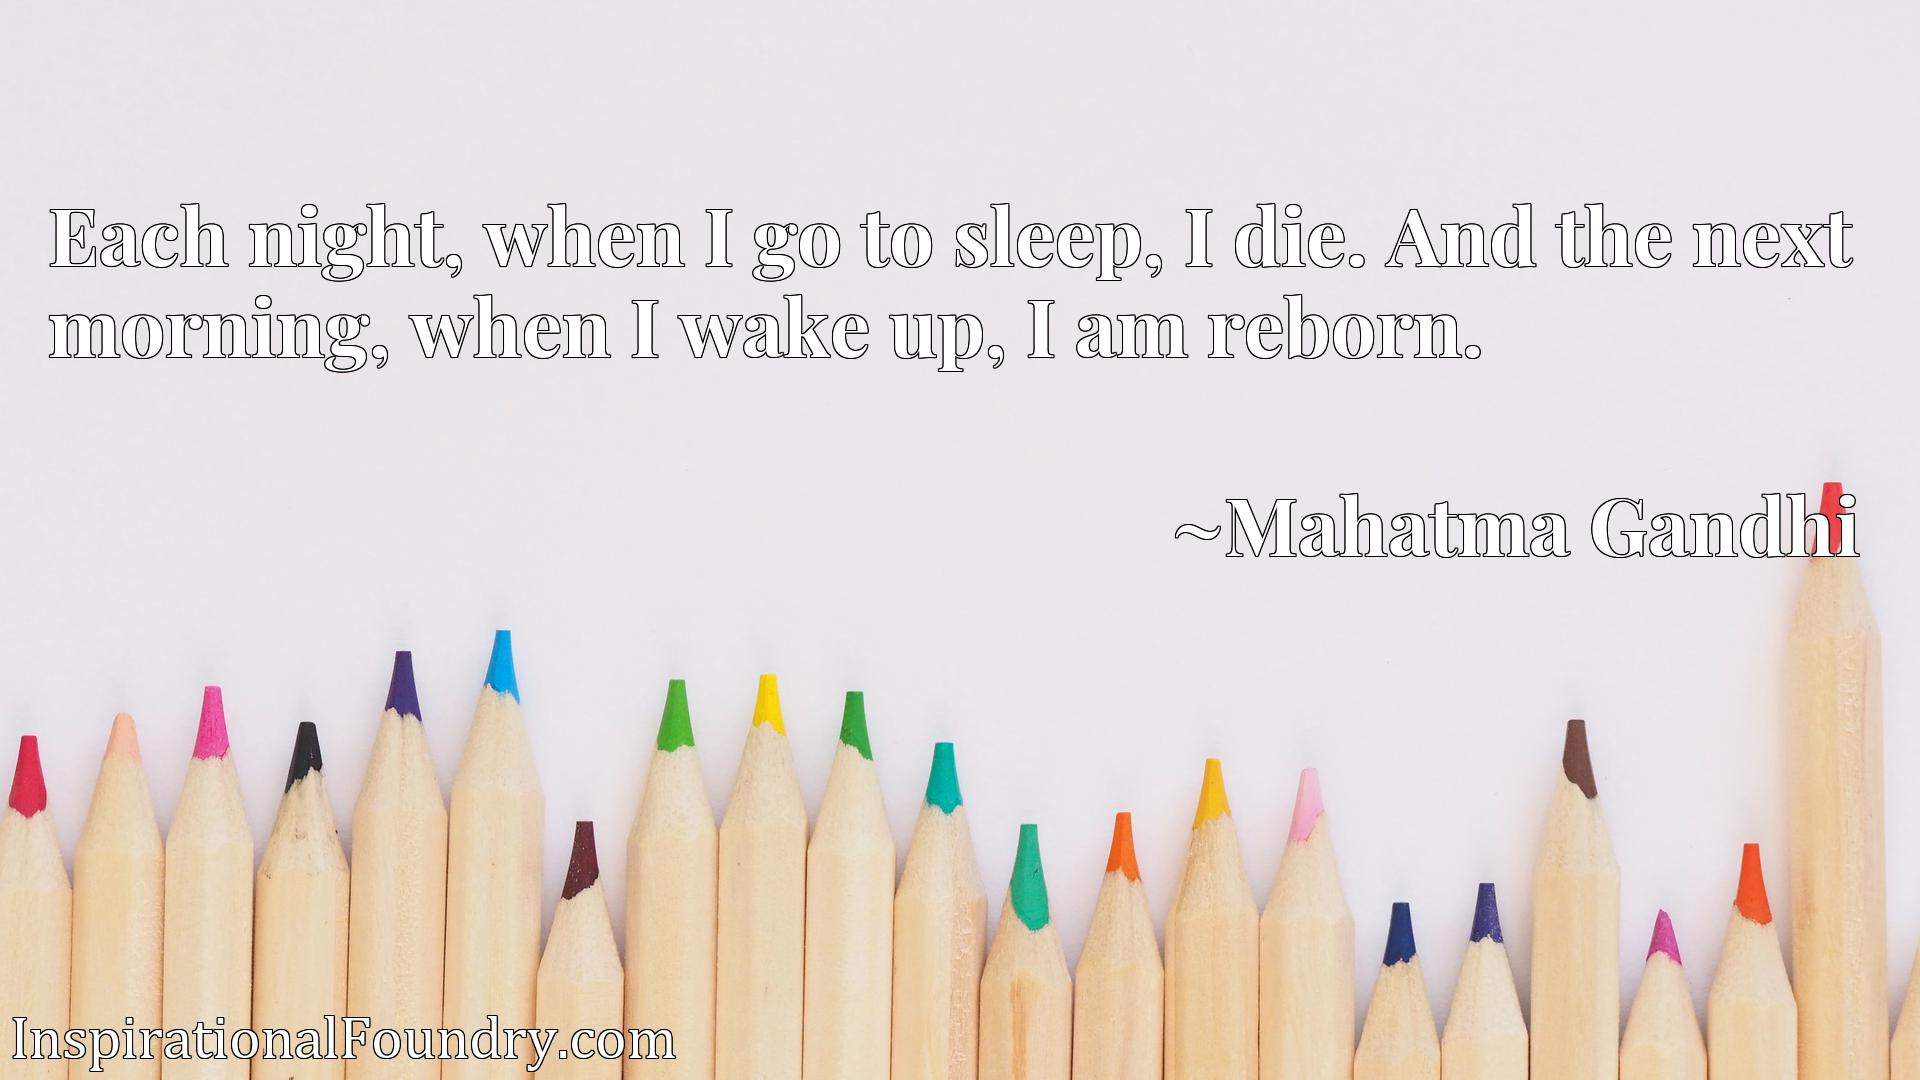 Each night, when I go to sleep, I die. And the next morning, when I wake up, I am reborn.